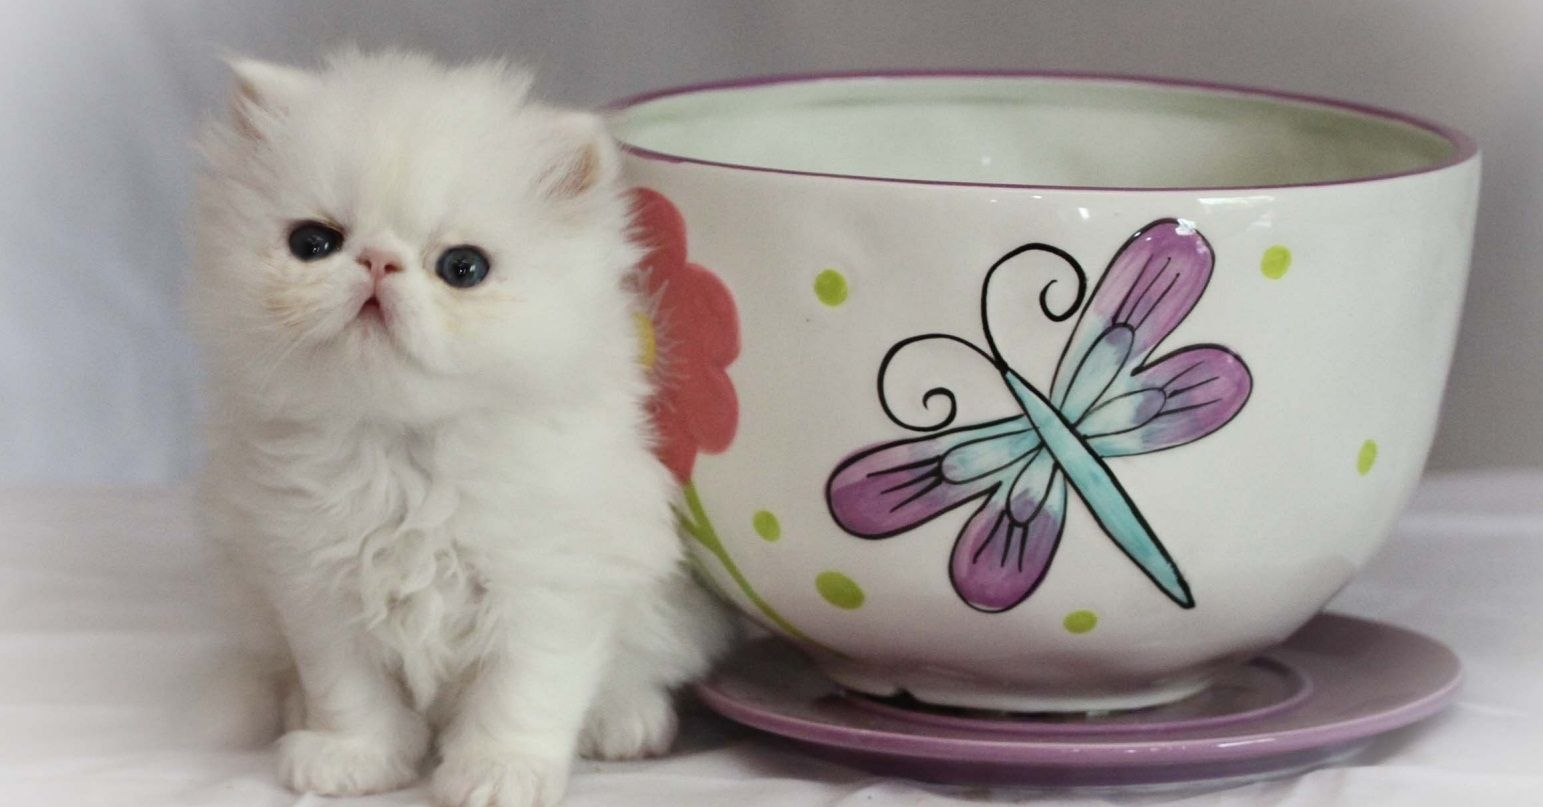 Teacup Persian Cat Persian kittens for sale, Teacup